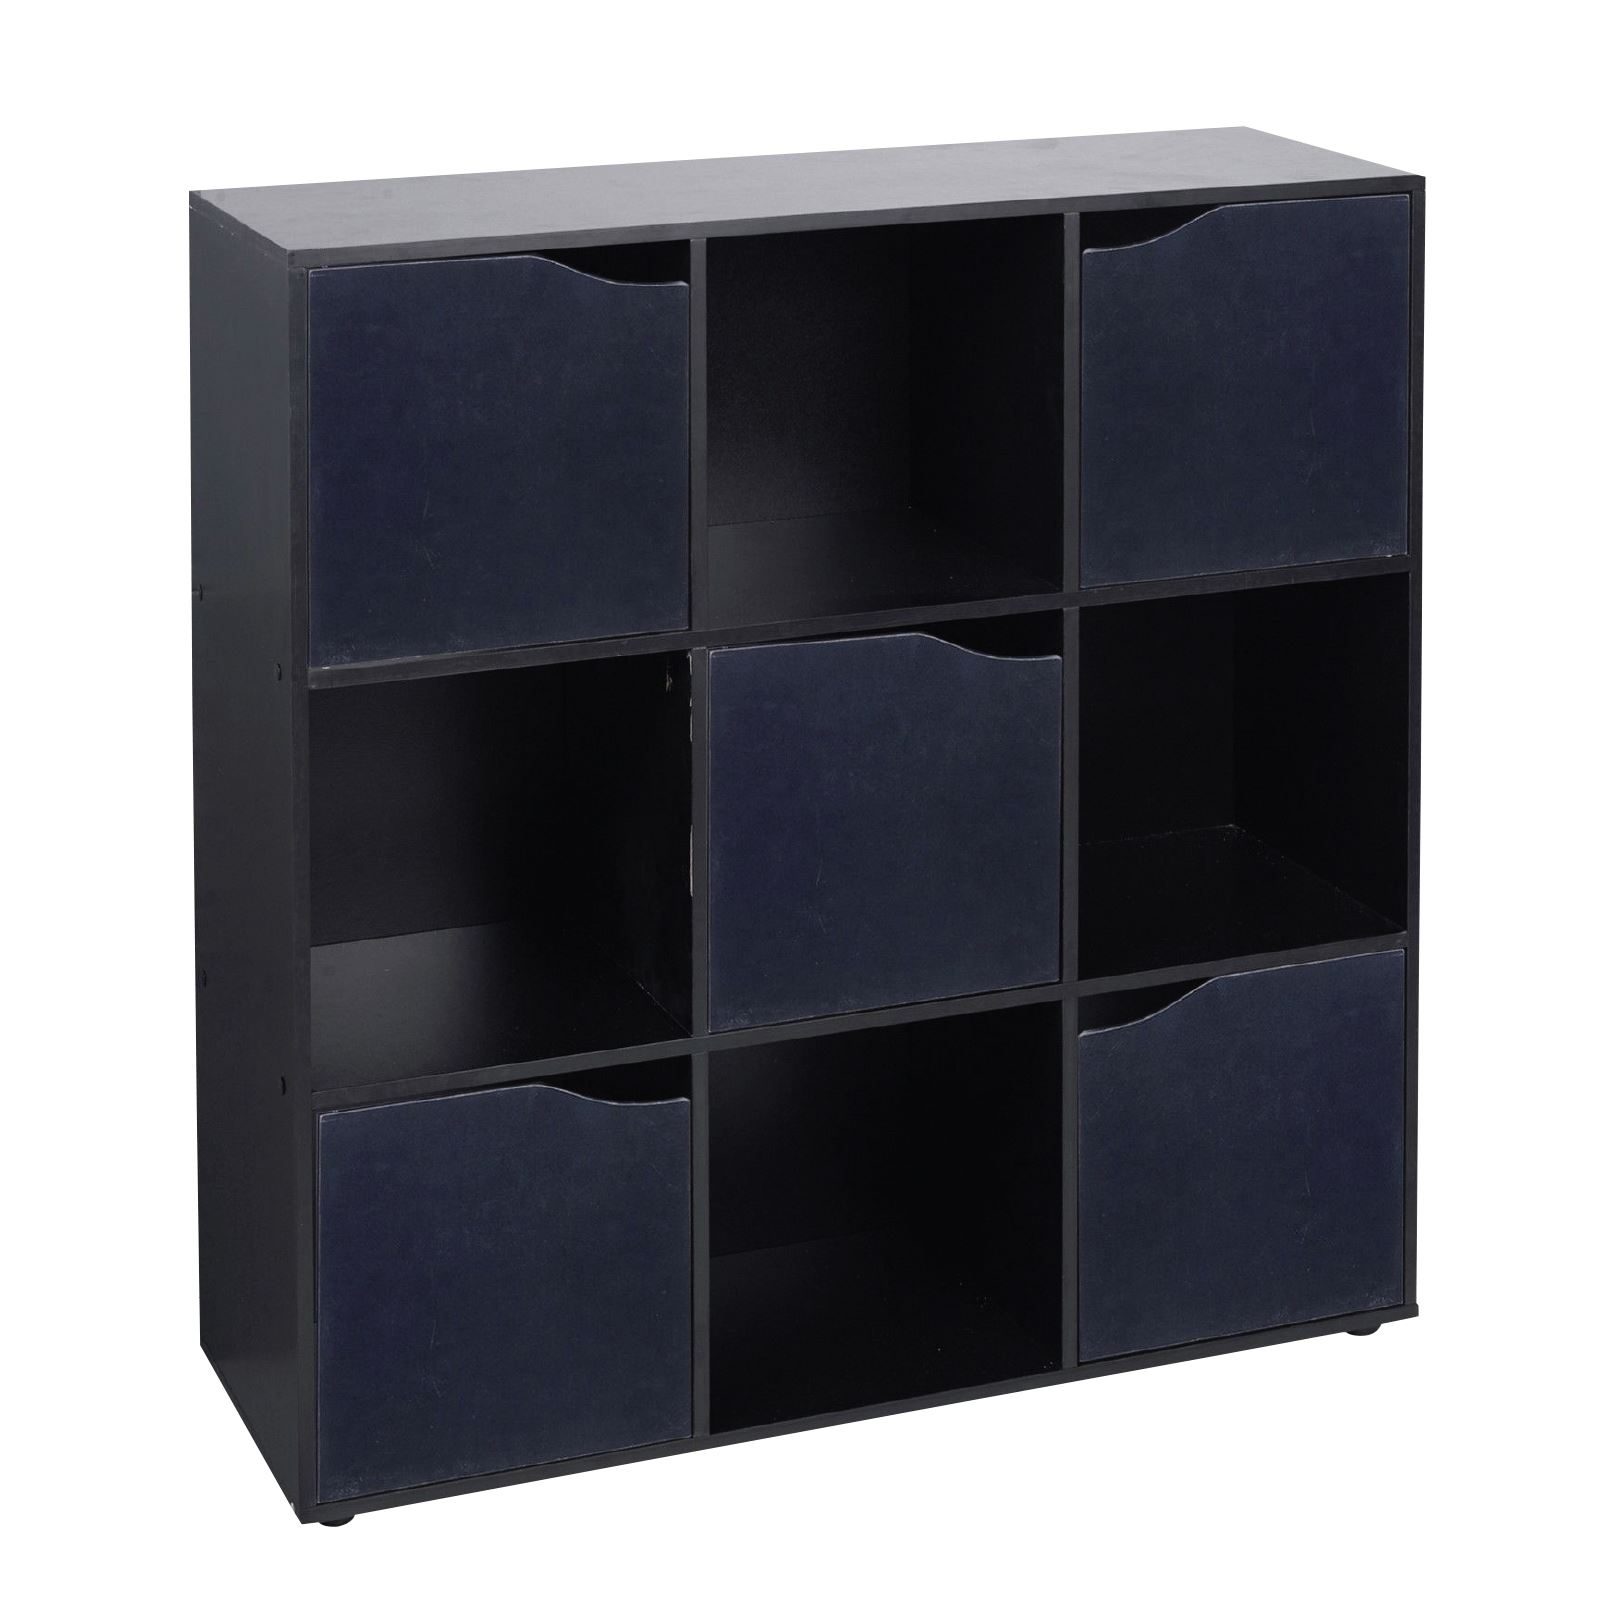 4 6 9 Cube Wooden Storage Unit Bookcase Shelving Display